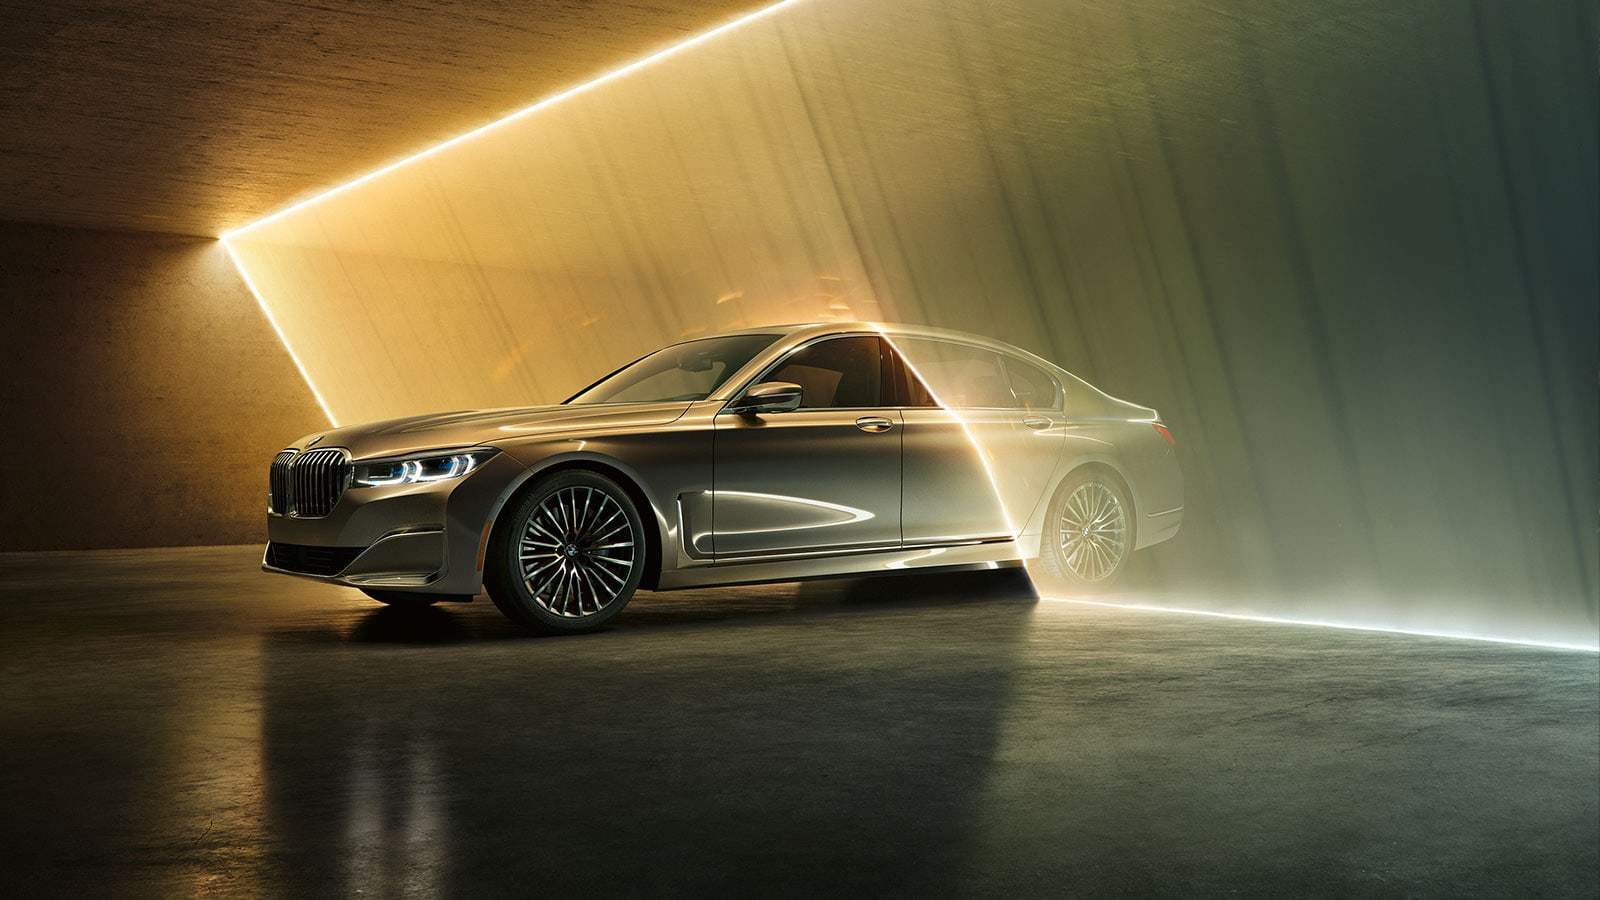 A BMW 7 Series driving through a sheet of falling water in a garage.